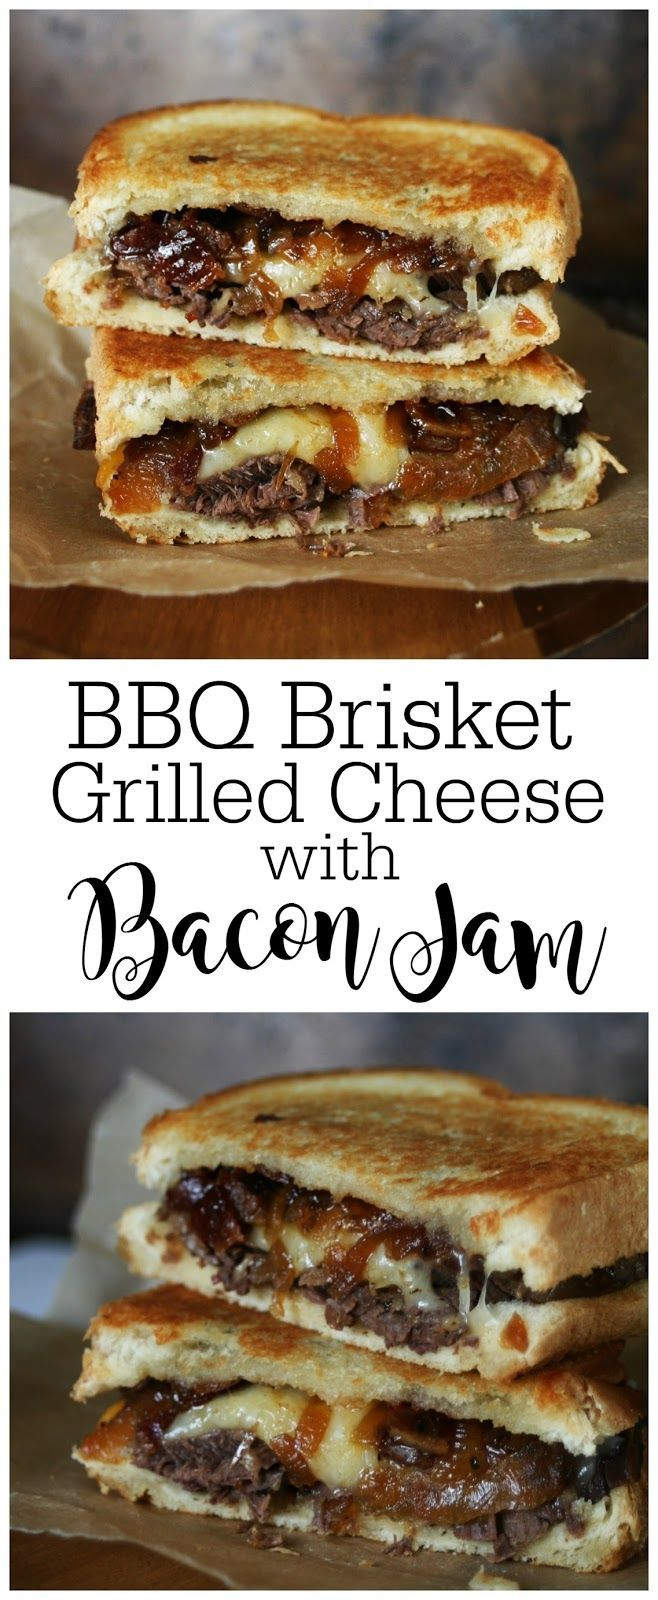 BBQ Brisket Grilled Cheese with Bacon Jam Recipe